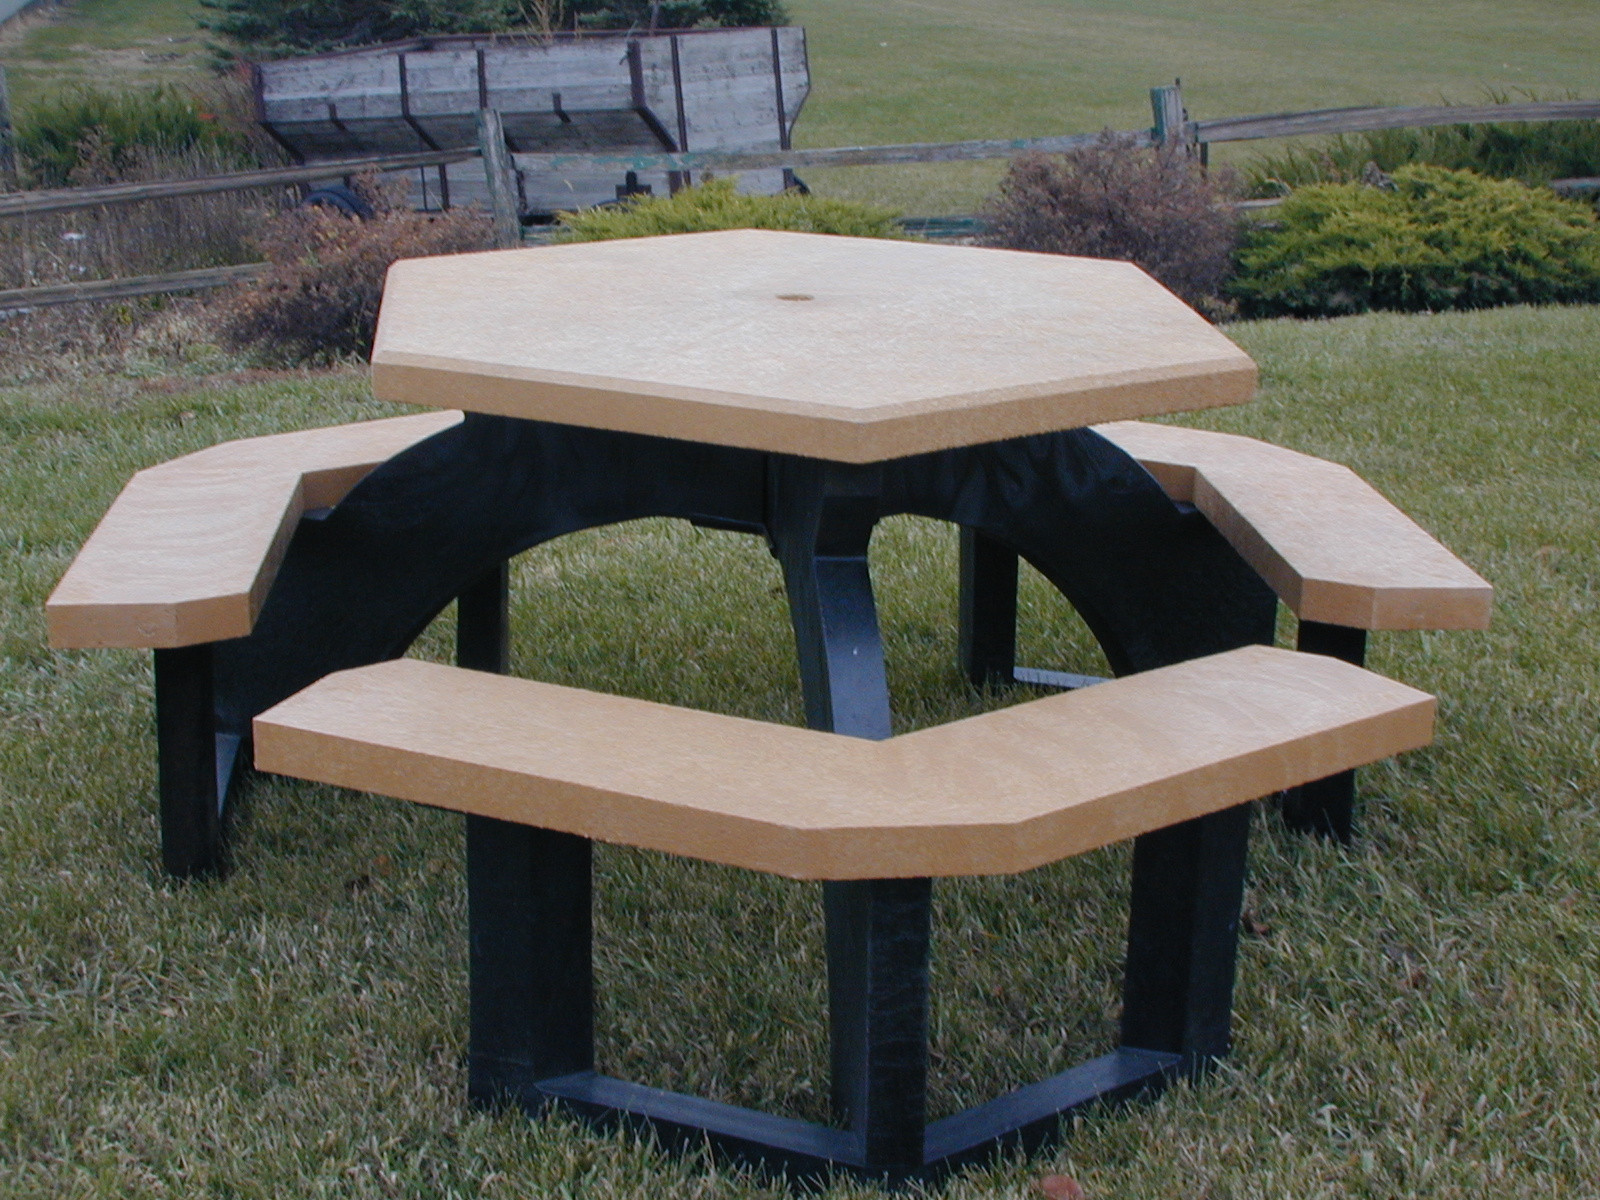 41 Heavy-Duty Recycled Plastic Hexagonal Picnic Table